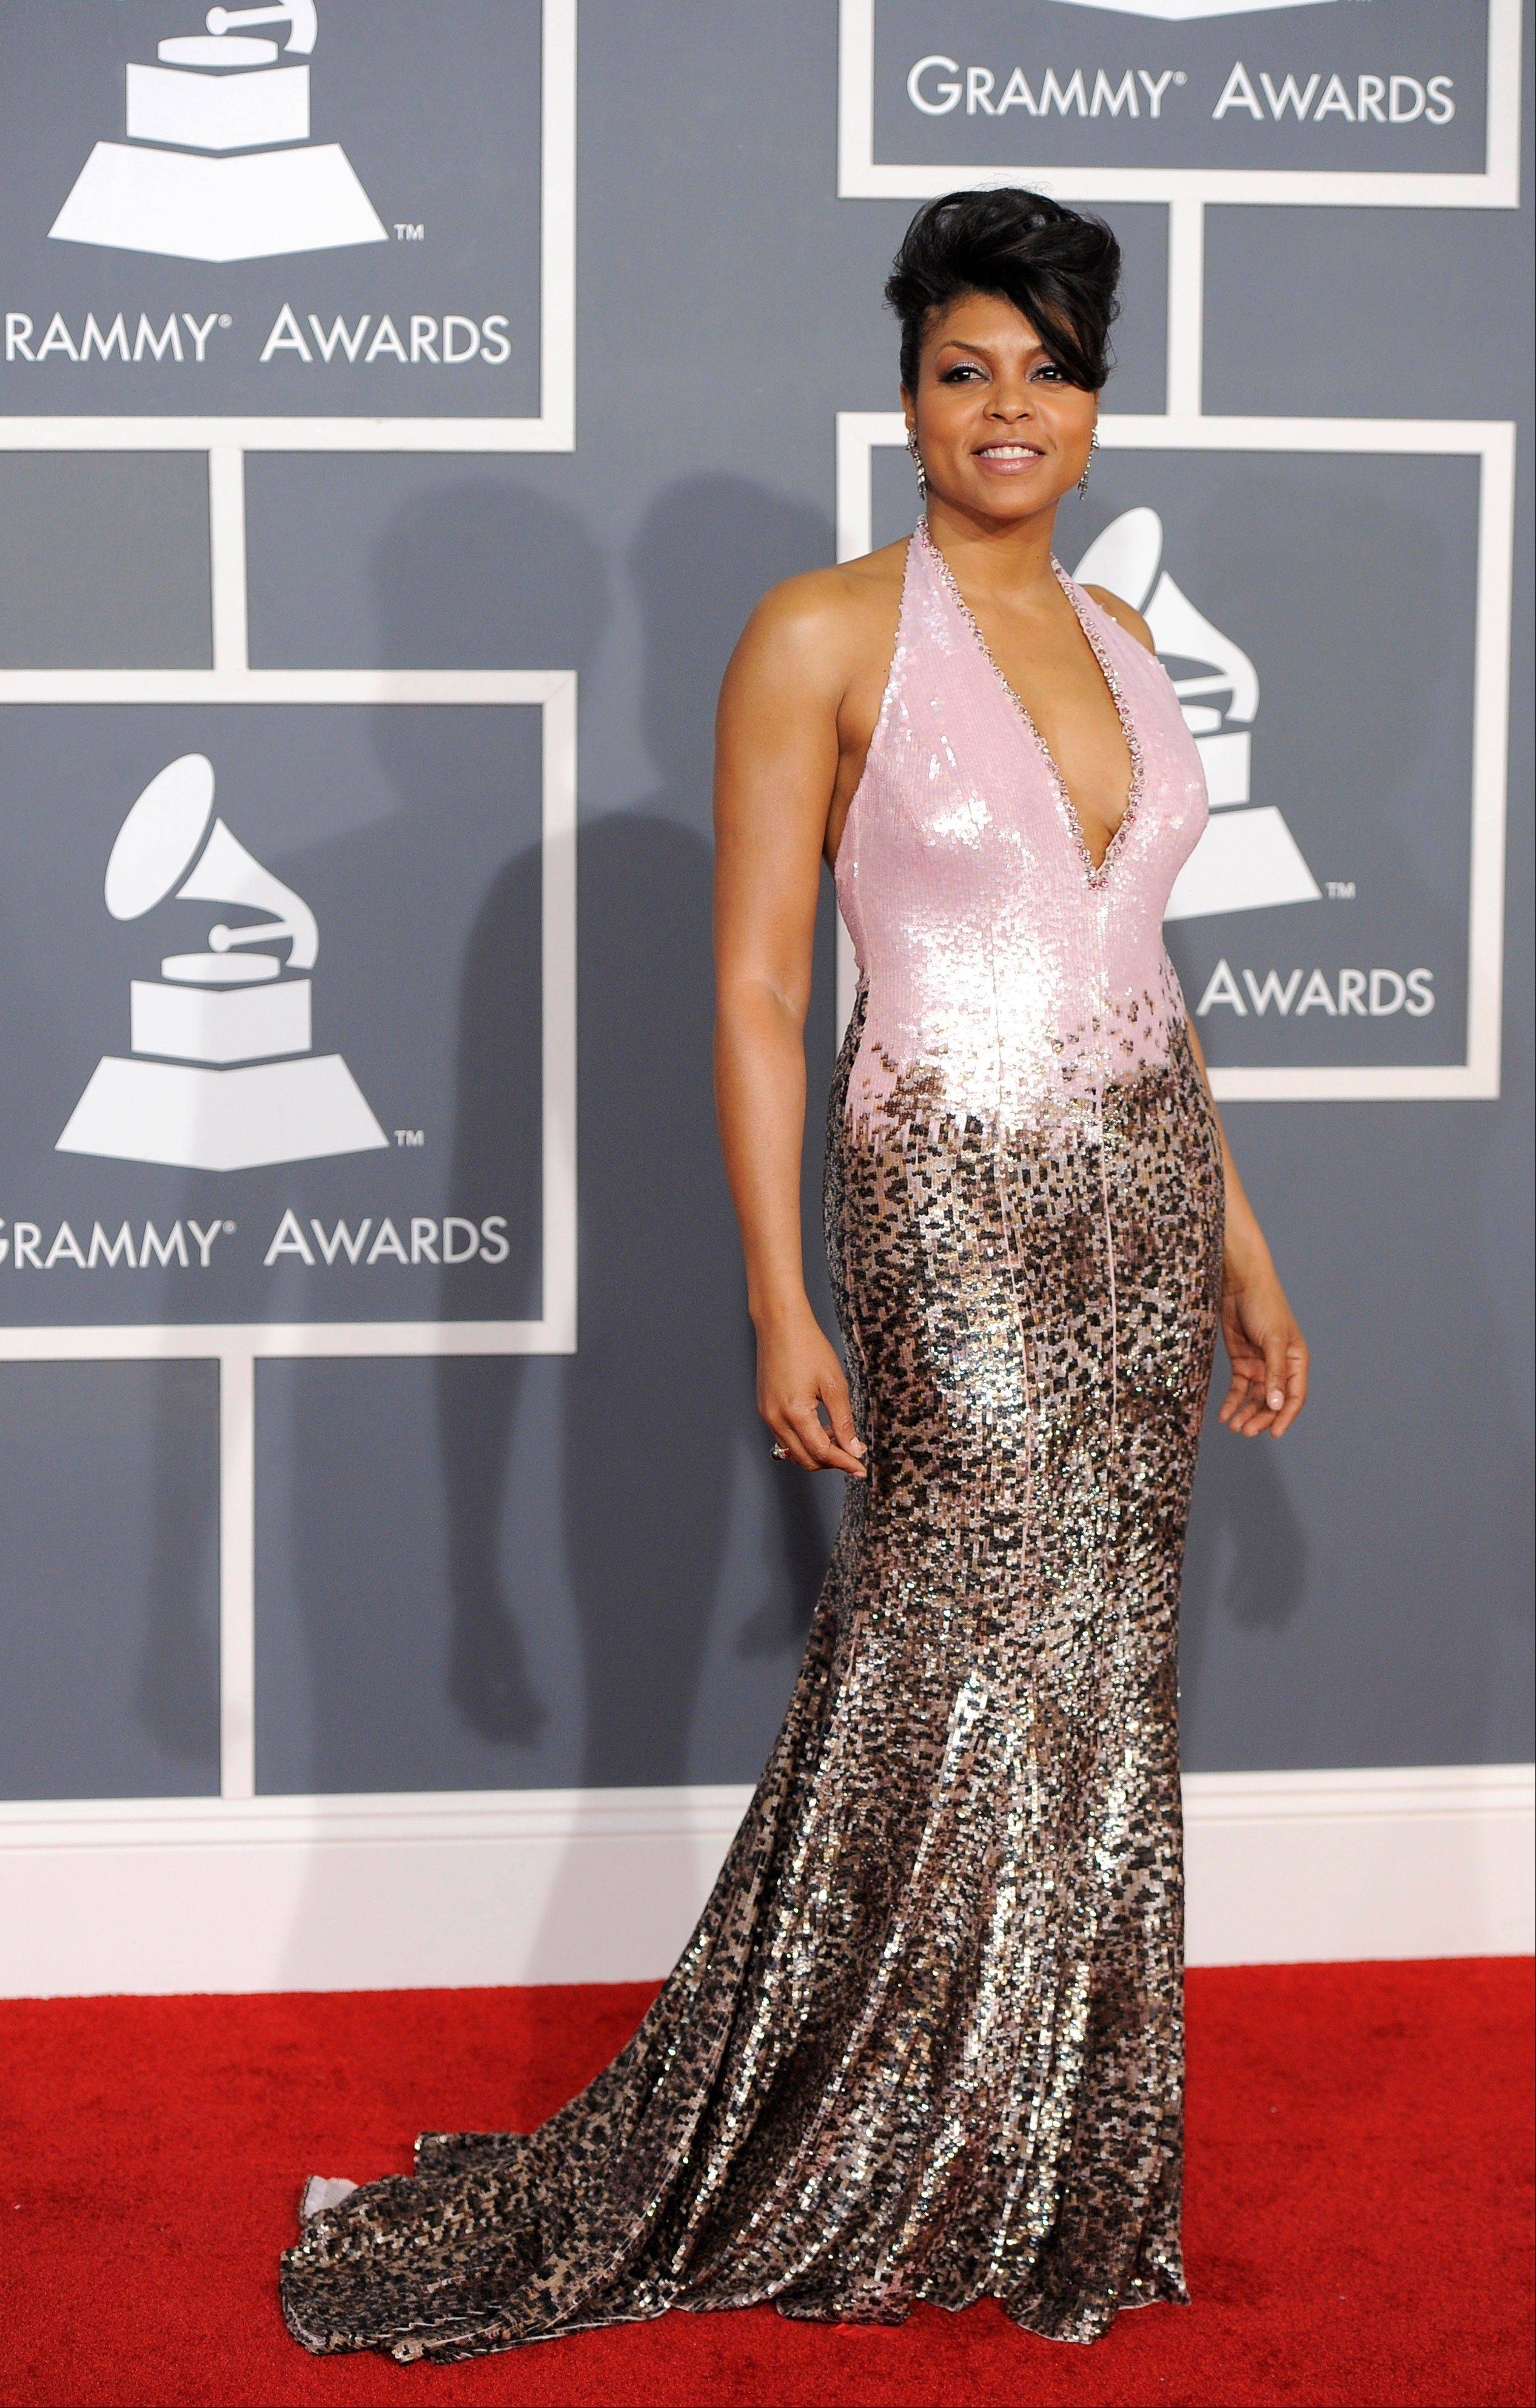 Taraji P. Henson arrives Sunday at the 54th annual Grammy Awards in Los Angeles.